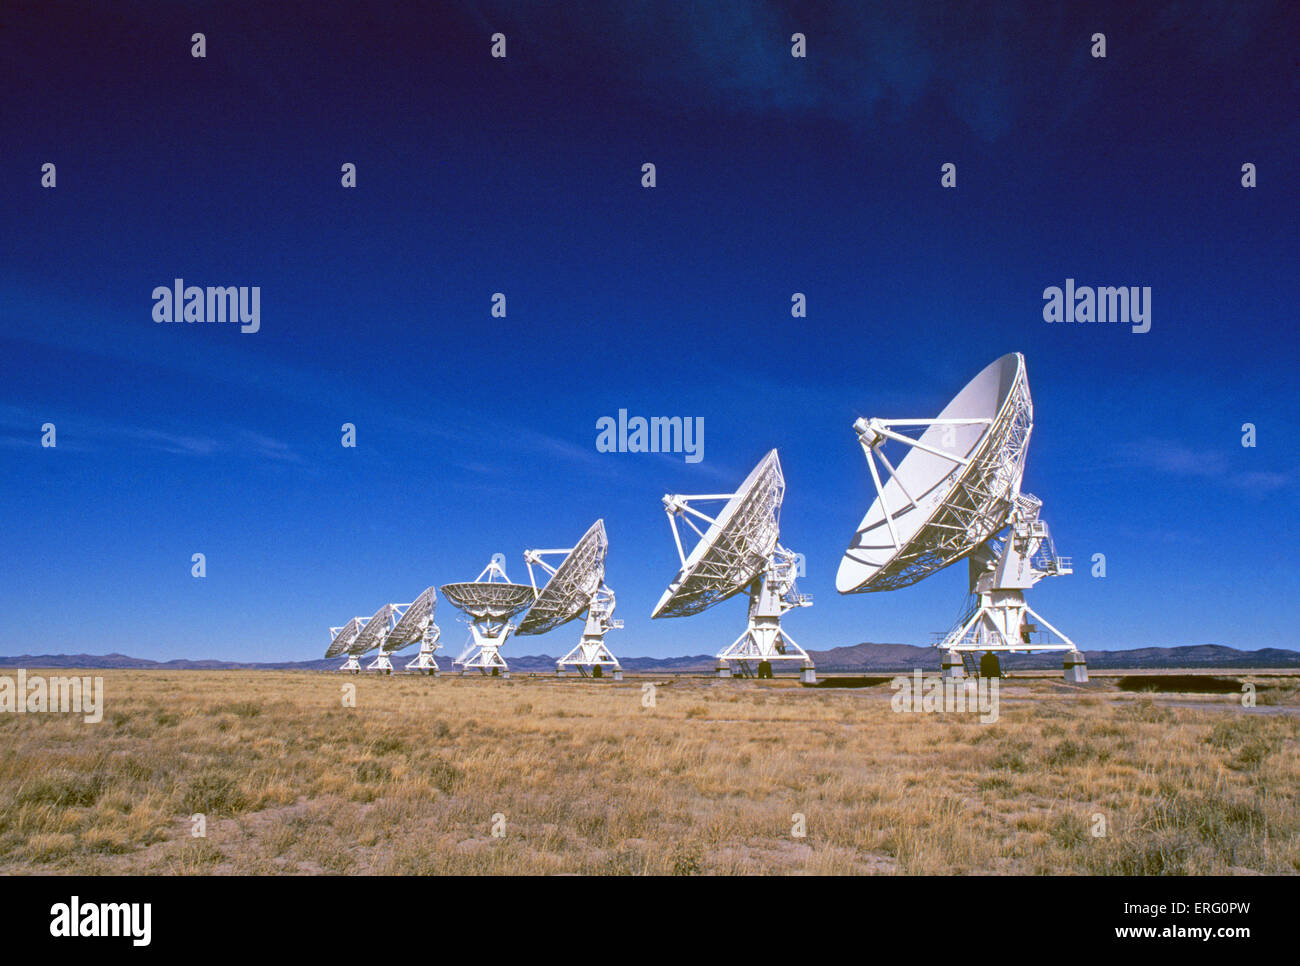 The giant radio telescopes of the Very Large Array, or VLA, on the Plains of San Agustin, between the towns of Magdalena - Stock Image